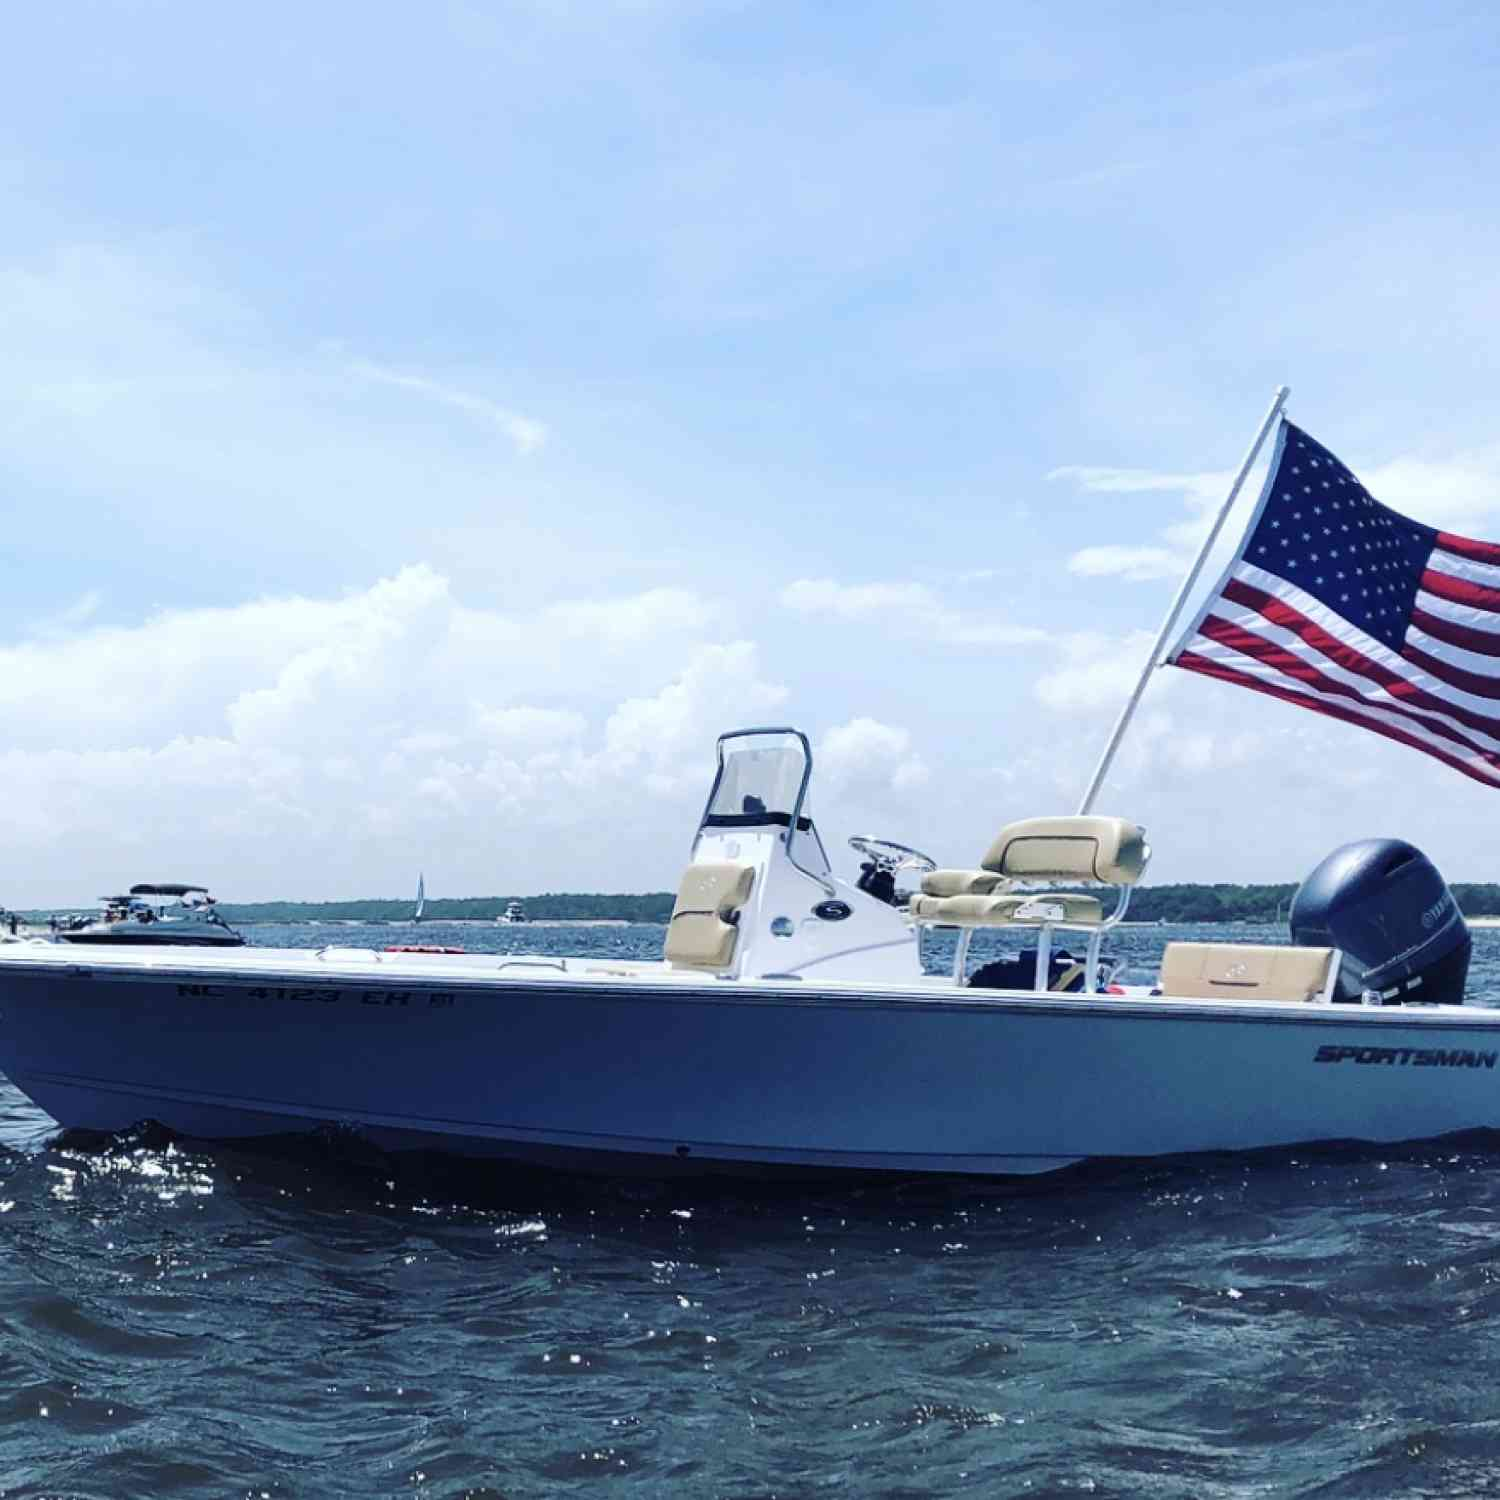 Title: Memorial Weekend 2018 - On board their Sportsman Masters 207 Bay Boat - Location: Little River Inlet, South Carolina. Participating in the Photo Contest #SportsmanJune2018